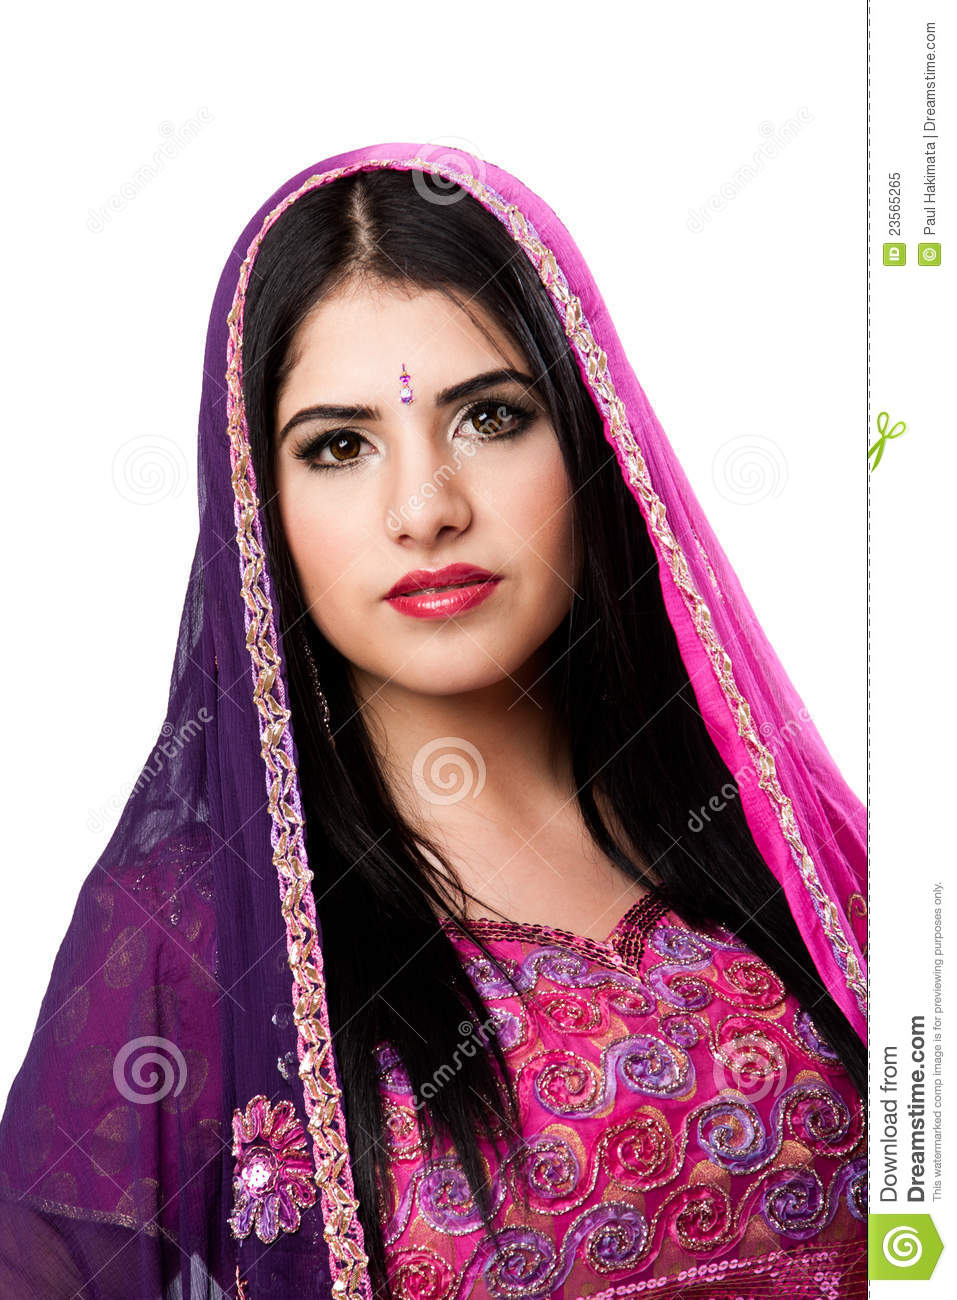 hindu single women in indiana Find lakhs of hindu matrimonial girls for marriage - join free and search verified hindu shaadi brides matrimony profiles, hindu matrimony brides, hindu wedding girls marriage site.